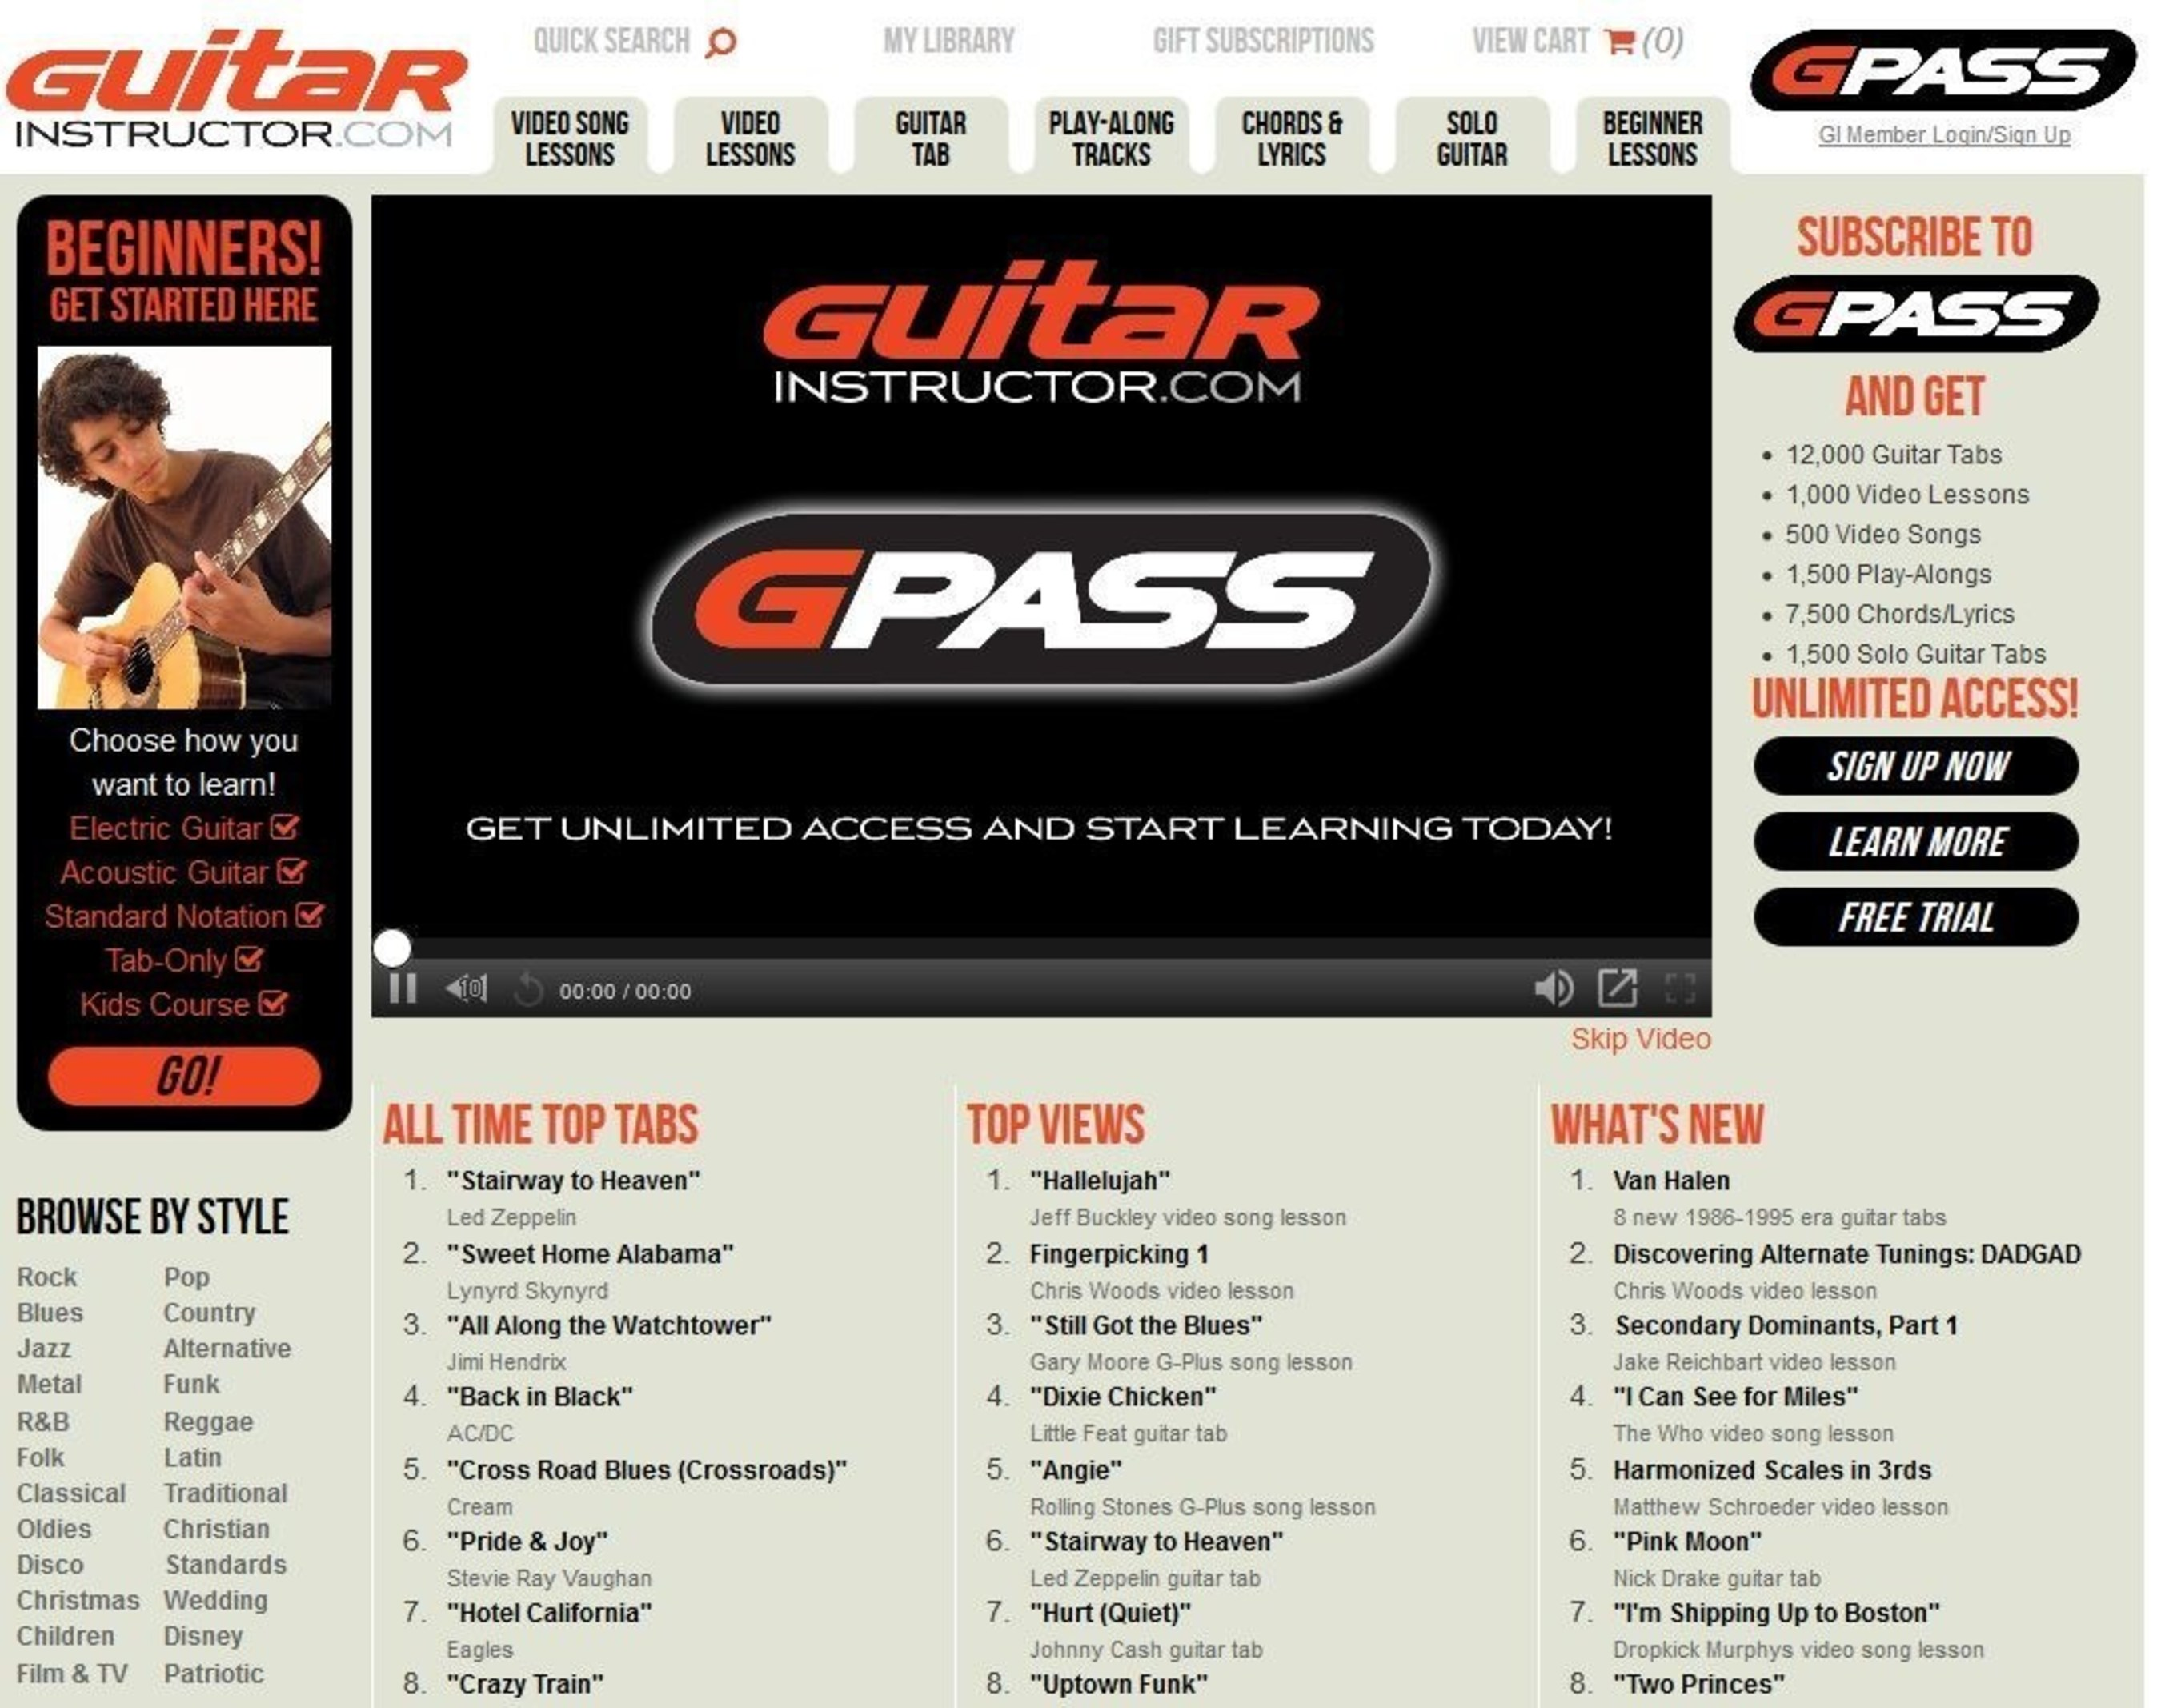 Hal Leonard Launches All-New GuitarInstructor.com with All-Access G-PASS Subscription Option